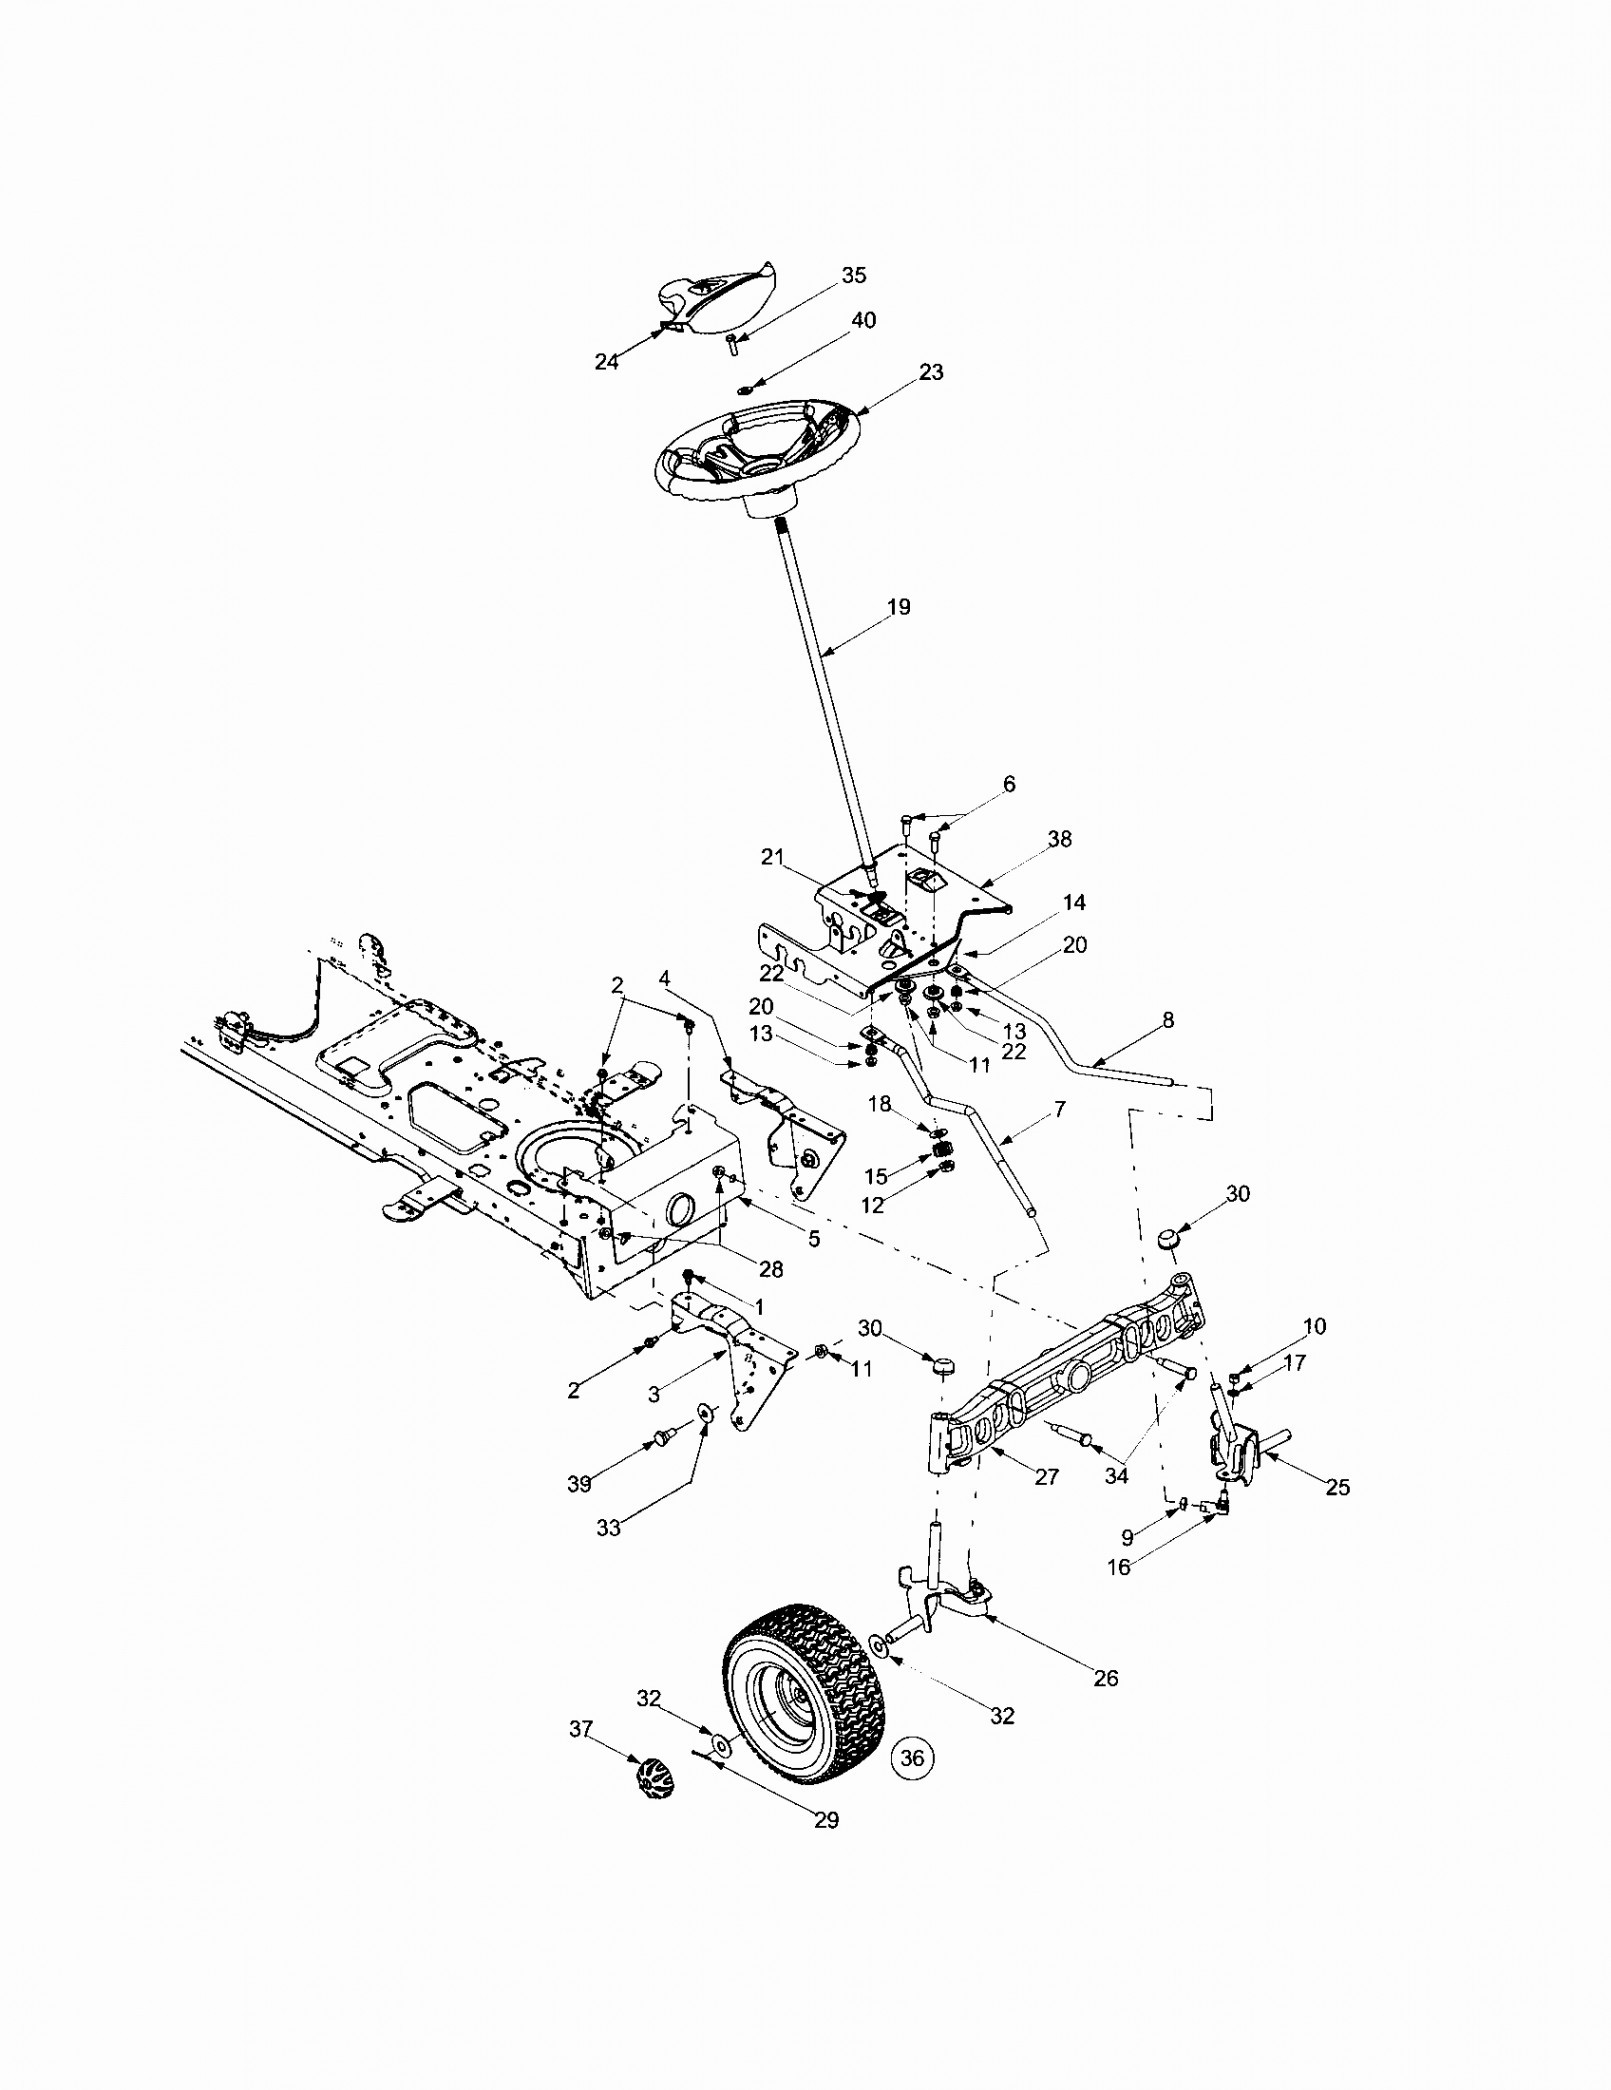 Woods Mower Parts Diagrams Troy Bilt Lawn Mower Parts Diagram Woods Mower Electrical Diagram